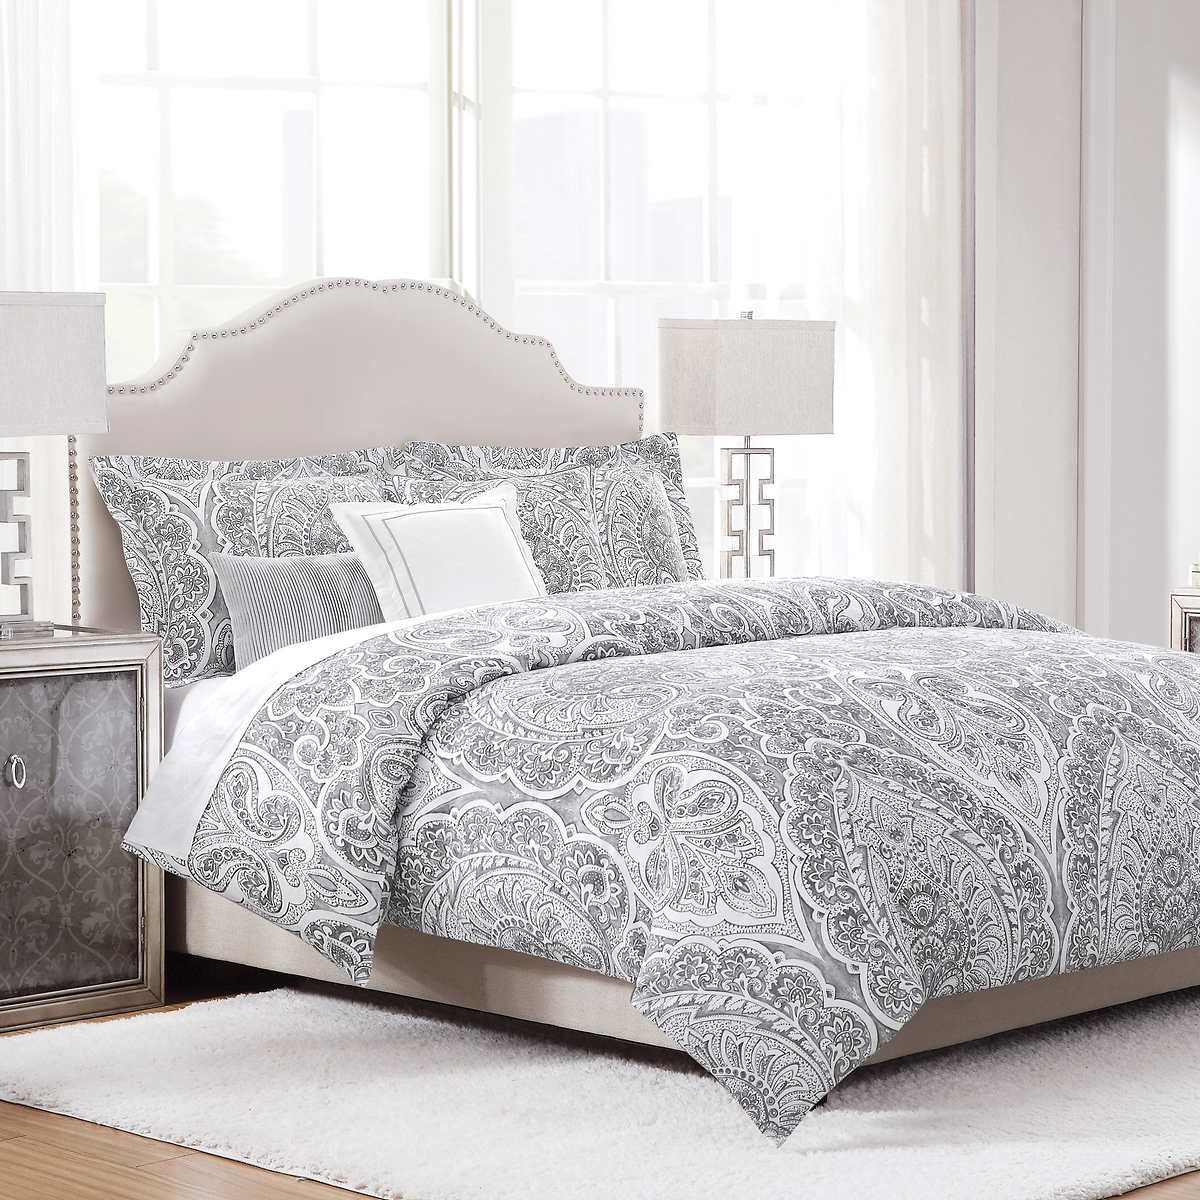 Costco King Sized Gray Comforter Set Grey Comforter Grey